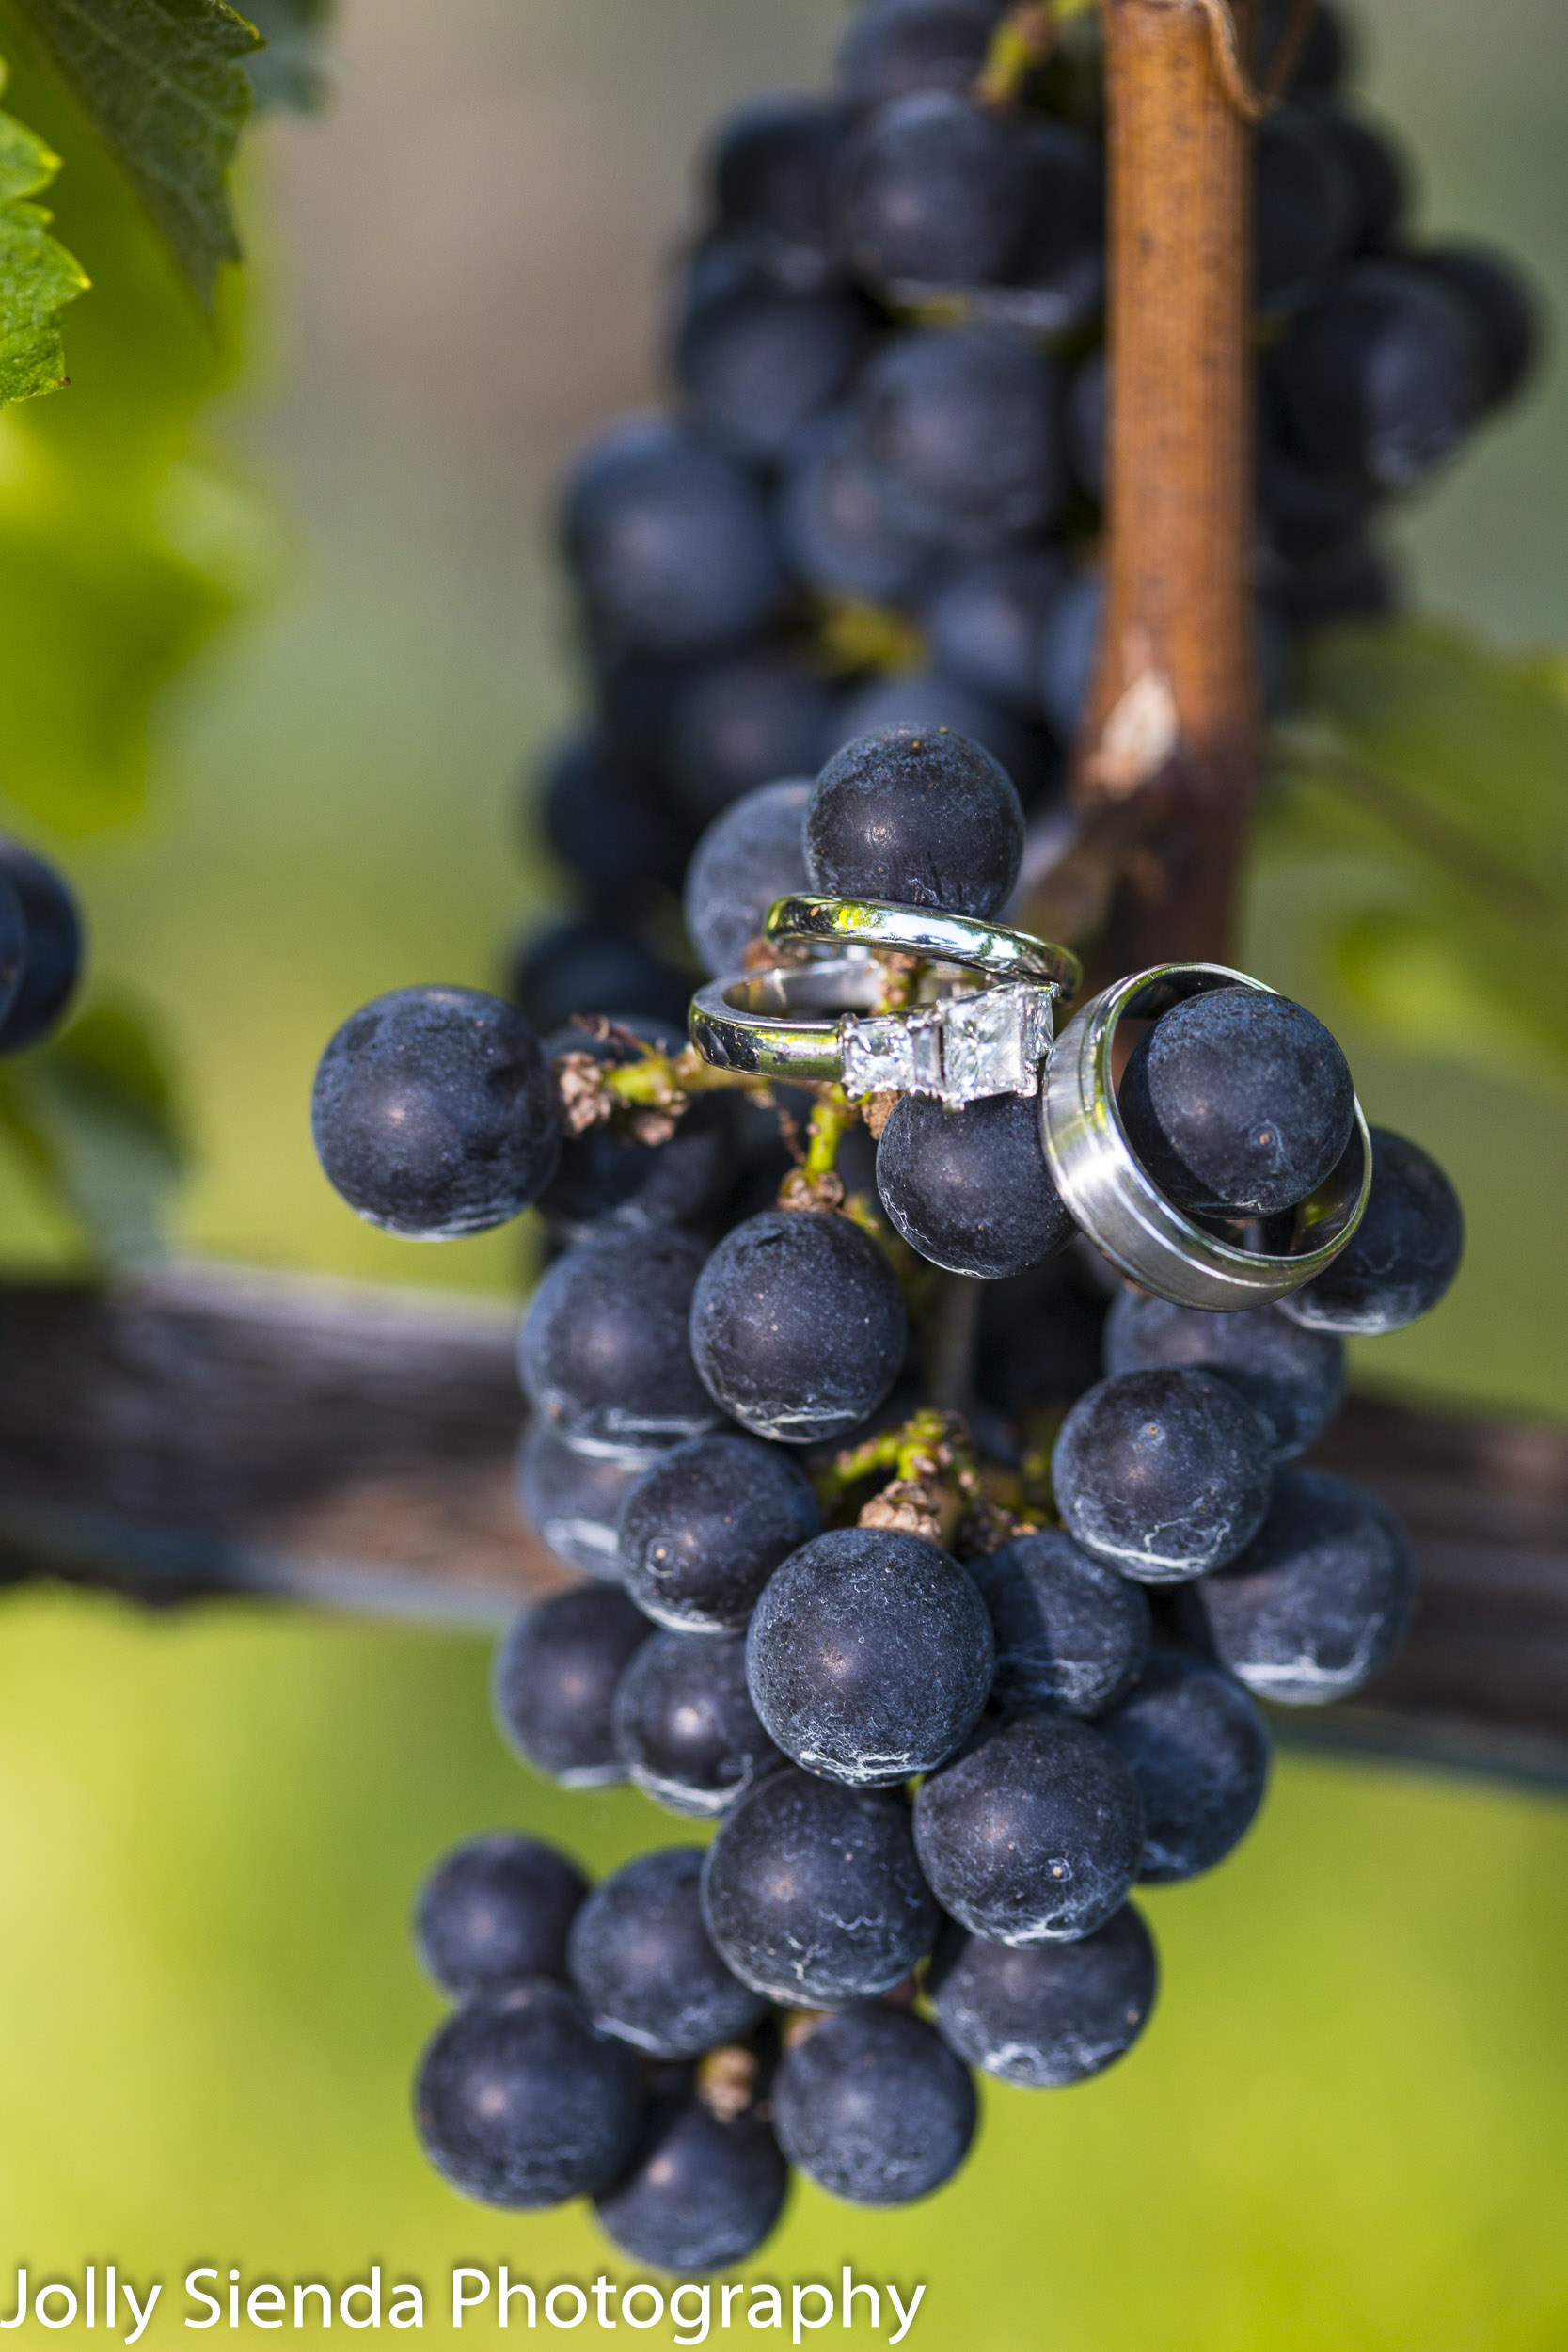 Weddings rings and grapes, vineyard wedding